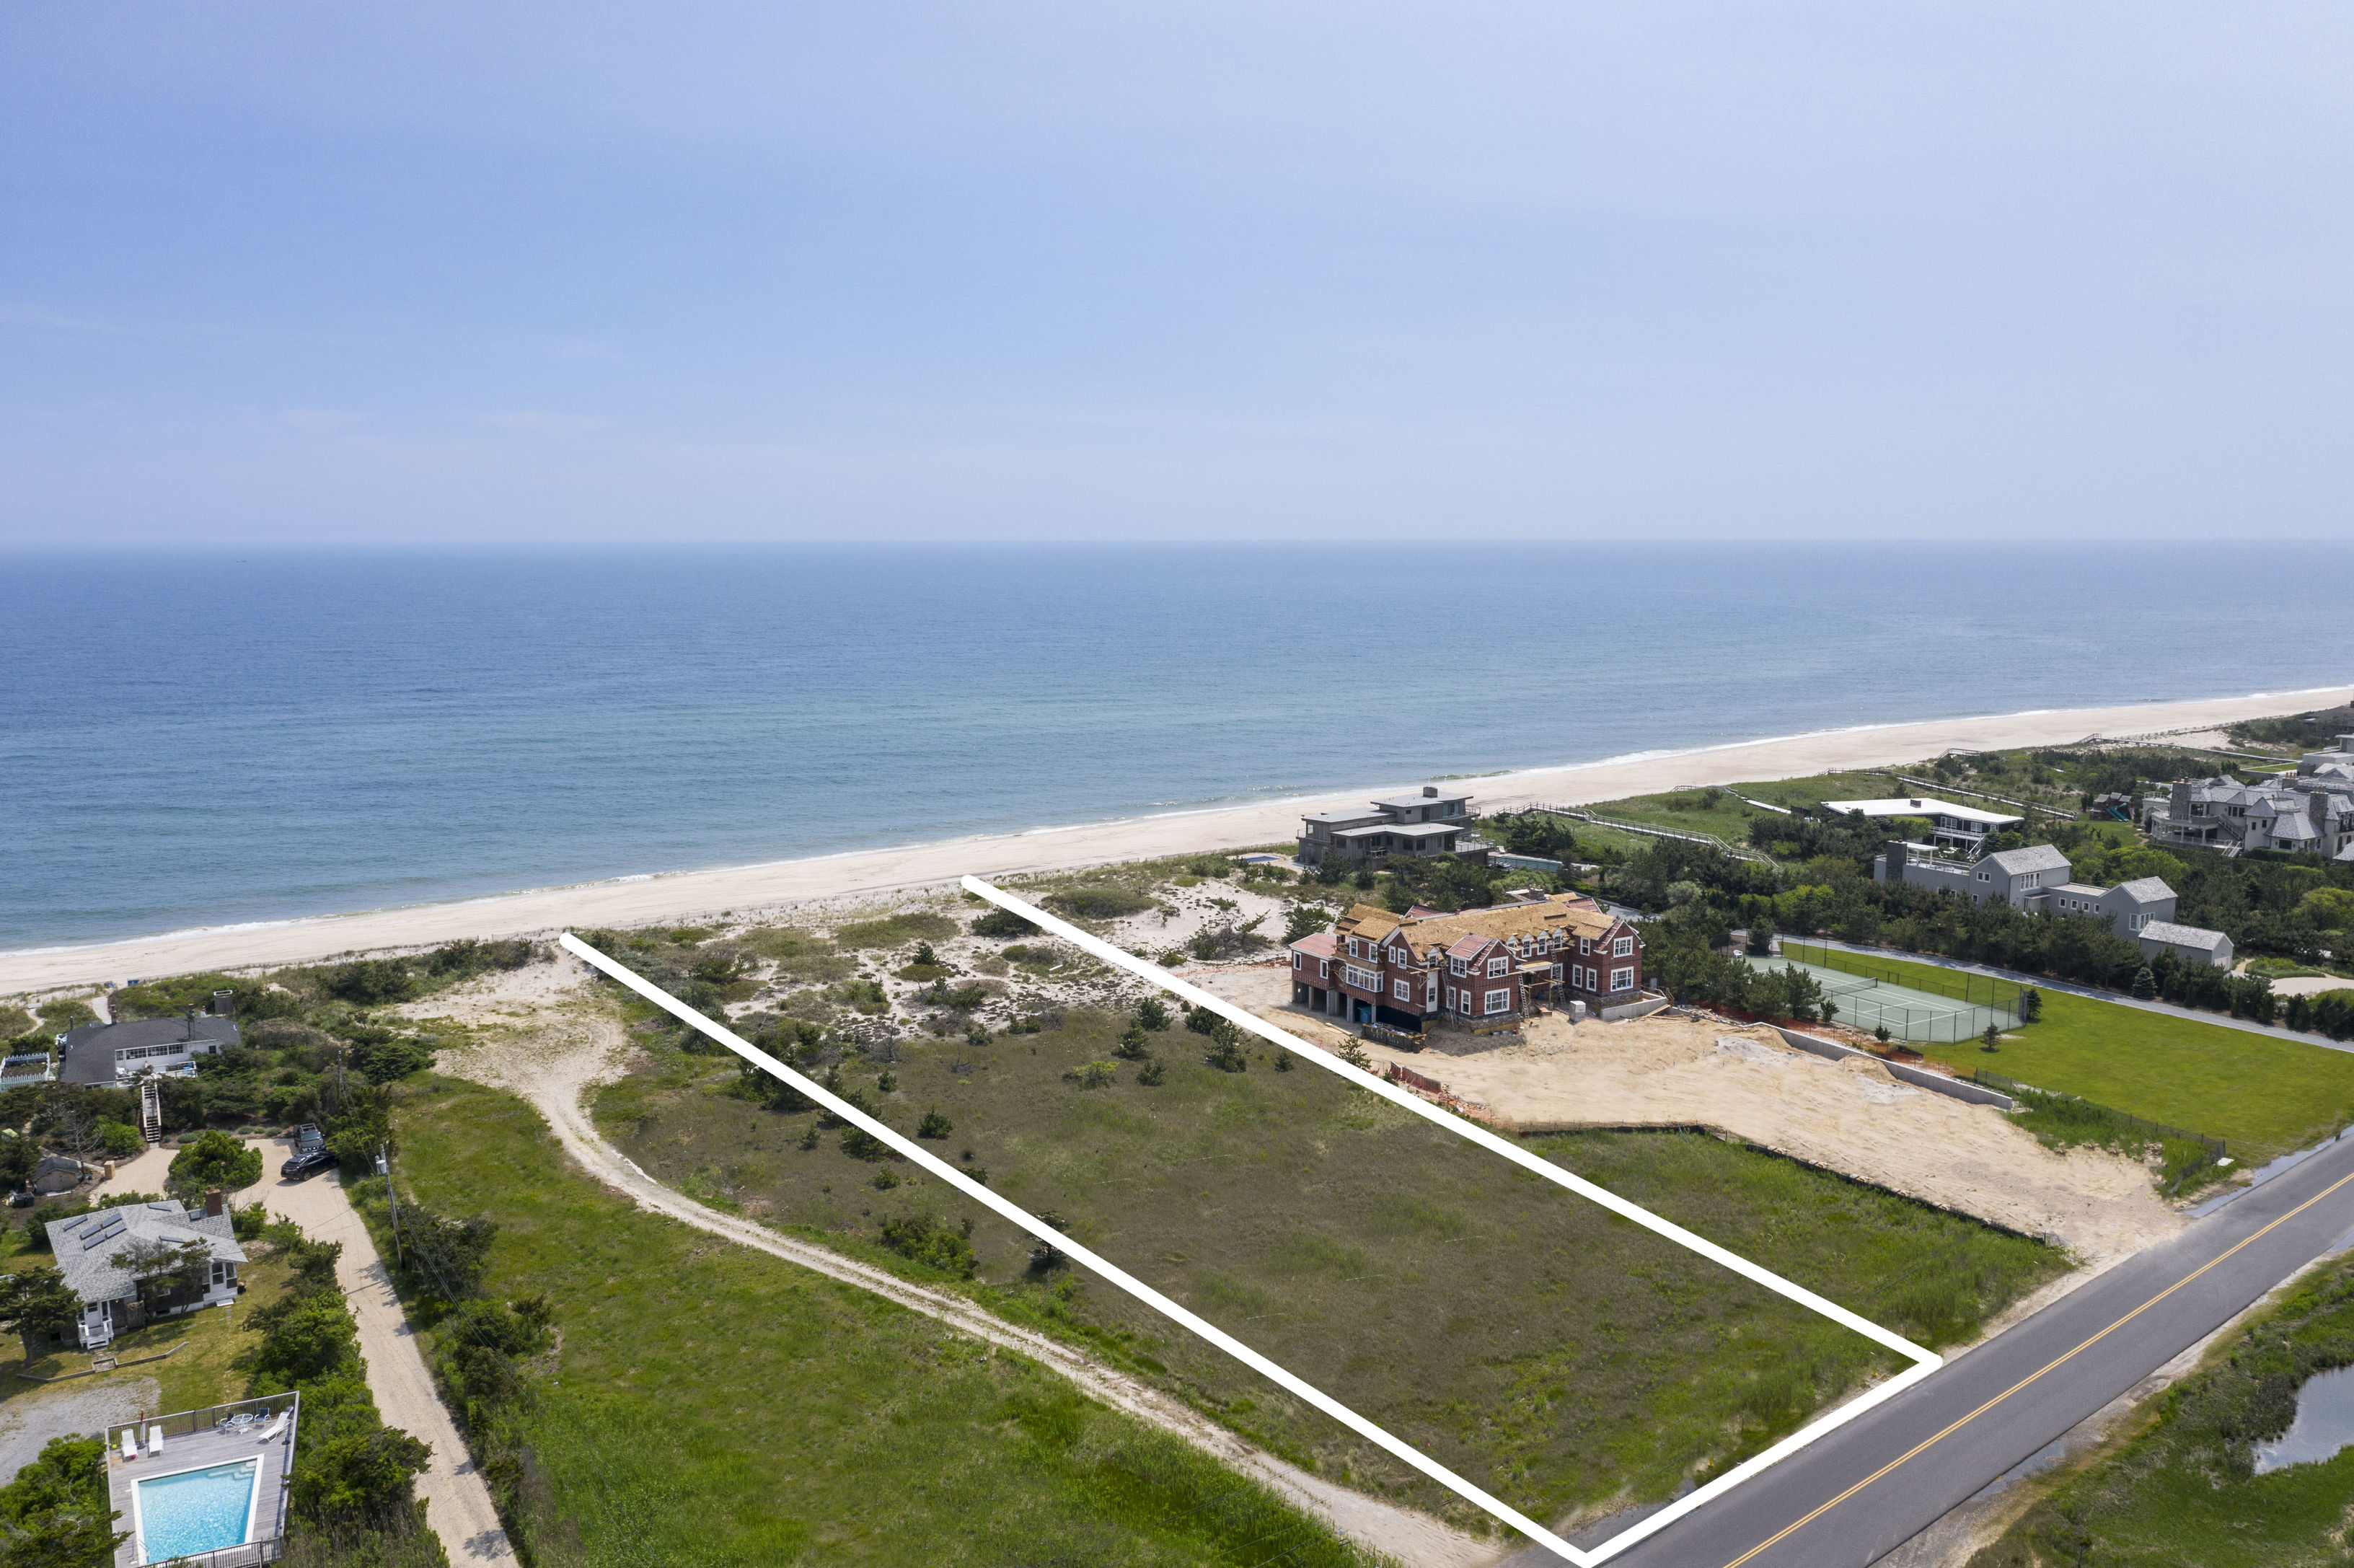 226 Dune Rd - Quogue South, New York